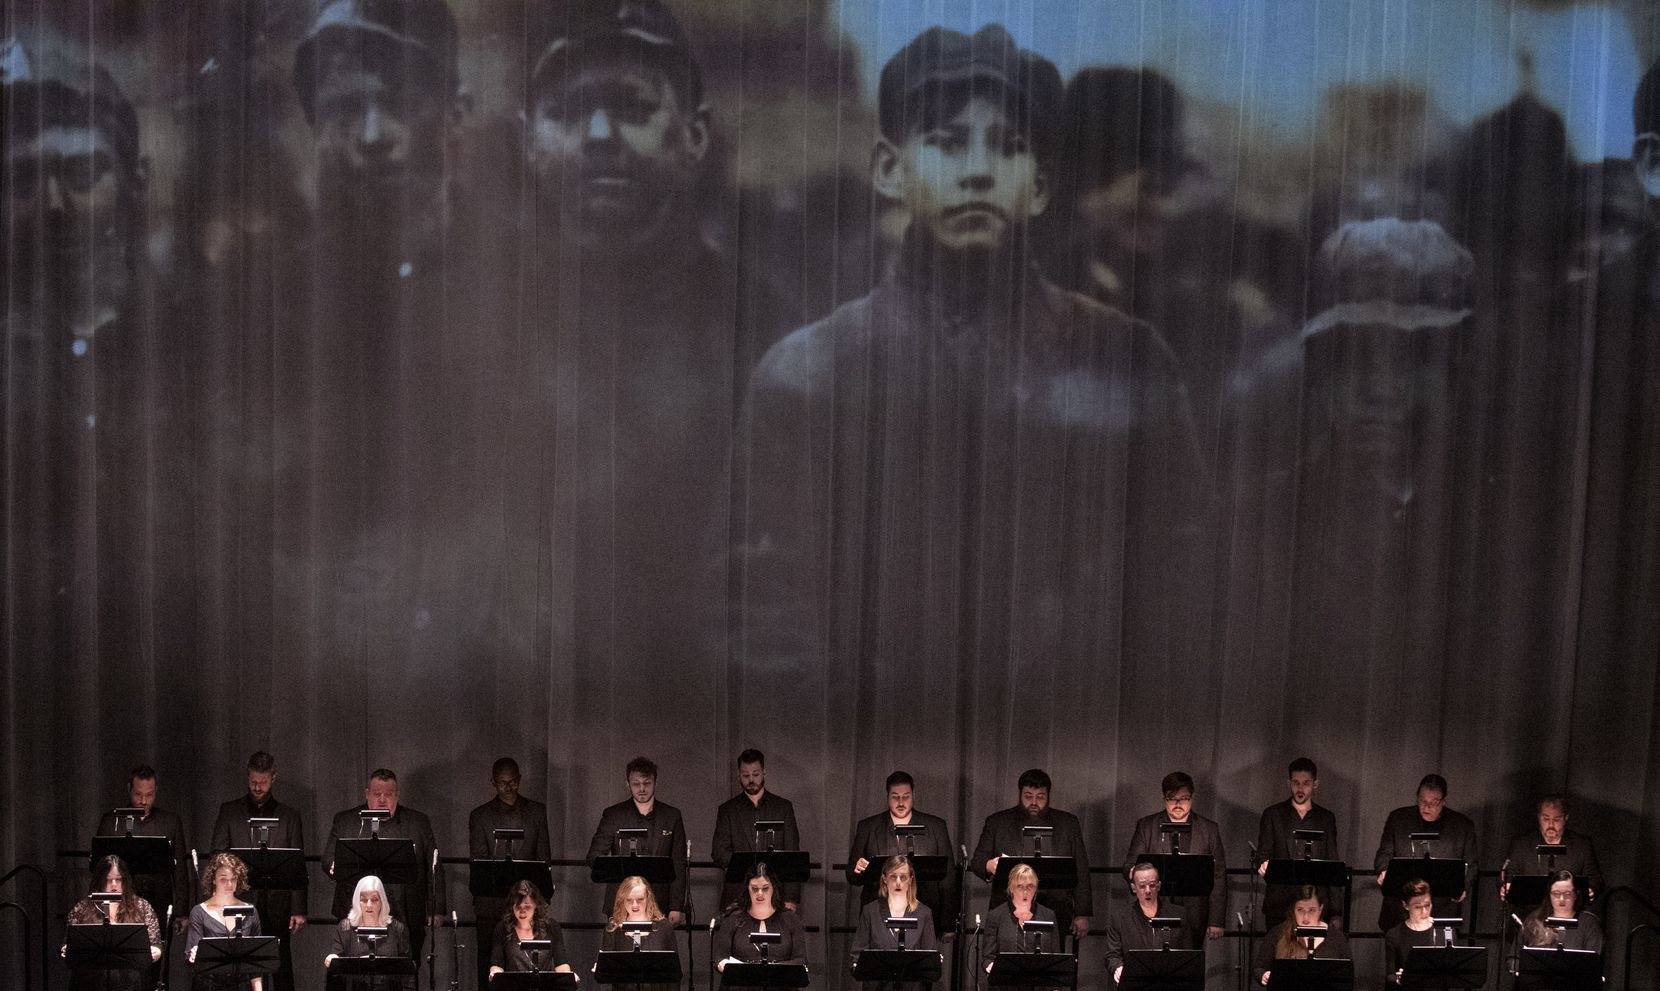 """A photo of young coal miners is projected during the Verdigris Ensemble performance of Julia Wolfe's """"Anthracite Fields"""" at the Dallas Symphony Orchestra's 2019 Soluna International Music and Arts Festival."""